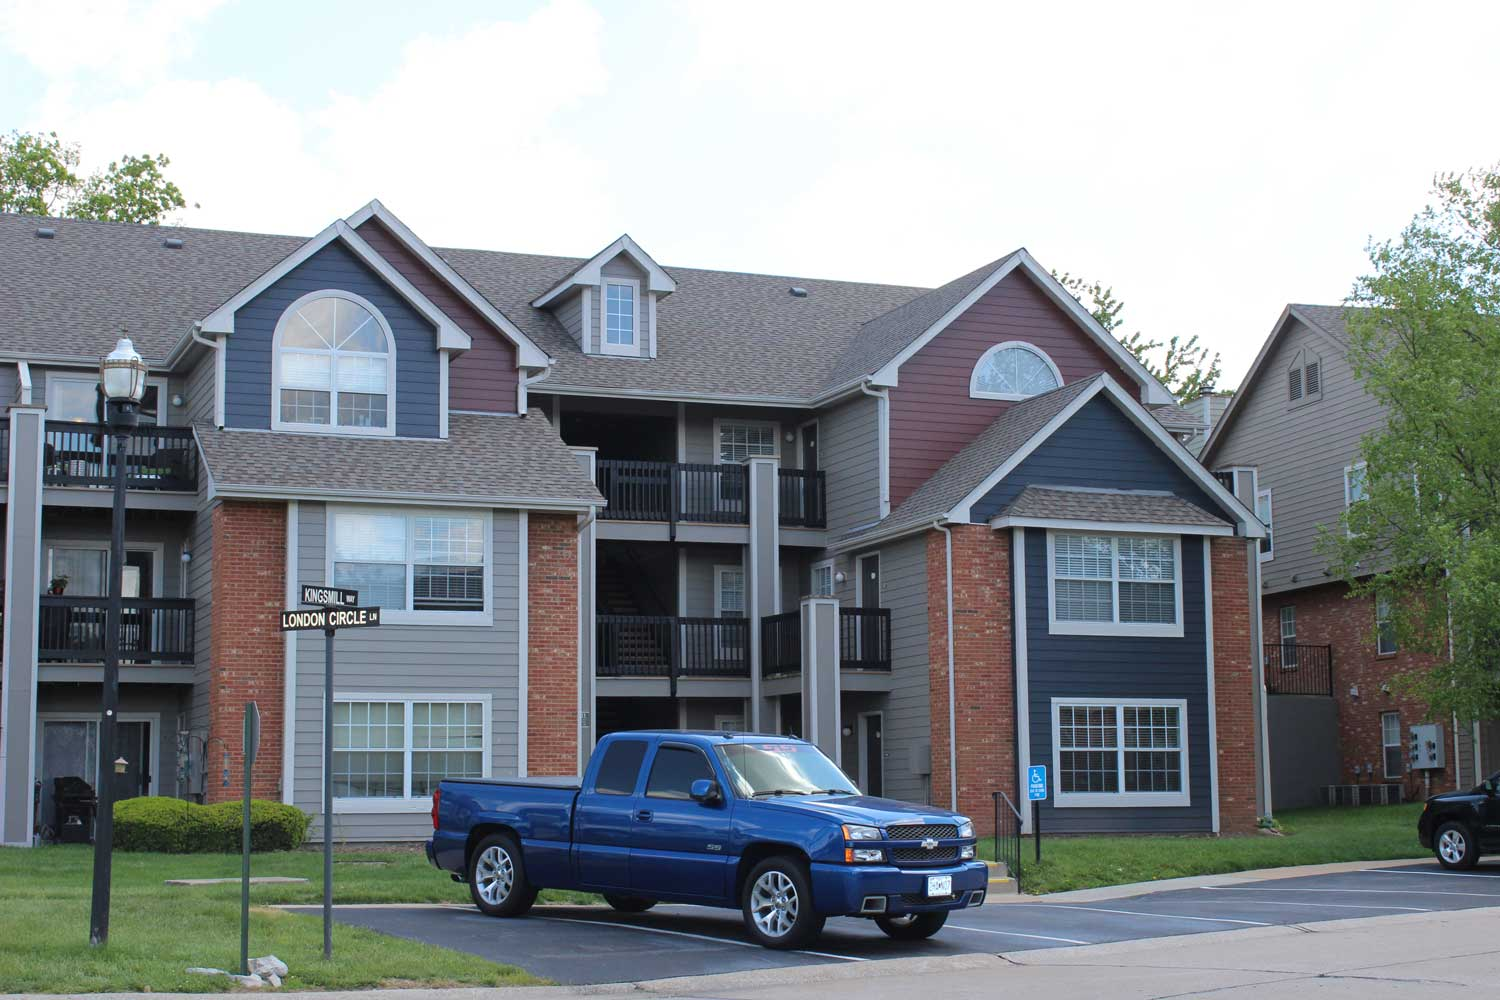 Apartments for Lease at Polo Downs Apartments in Fenton, MO